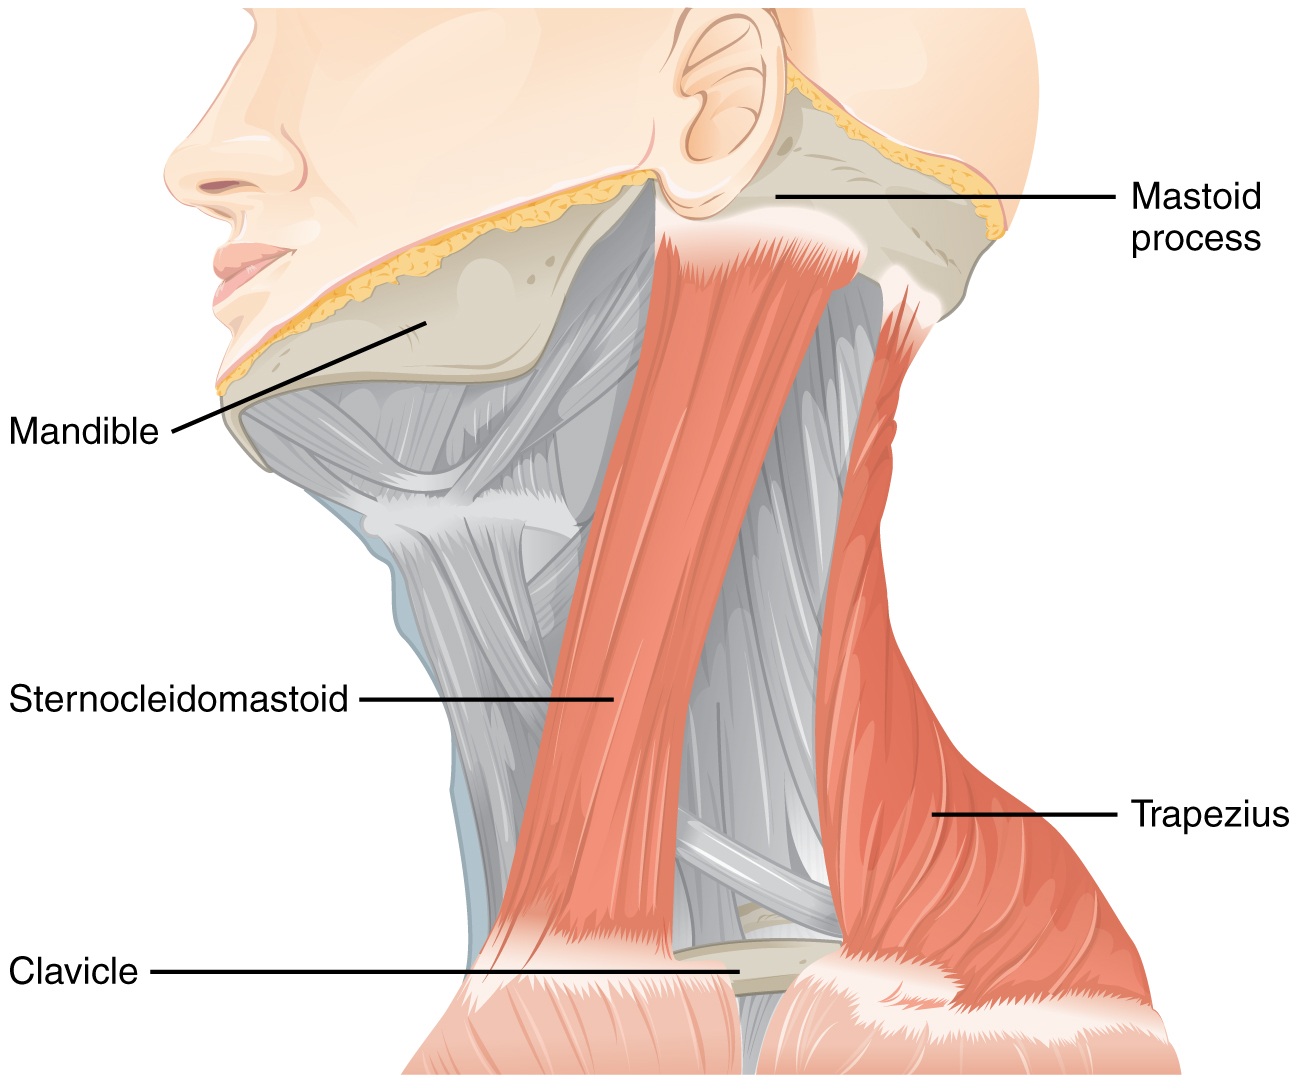 This figure shows the side view of a person's neck with the different muscles labeled.